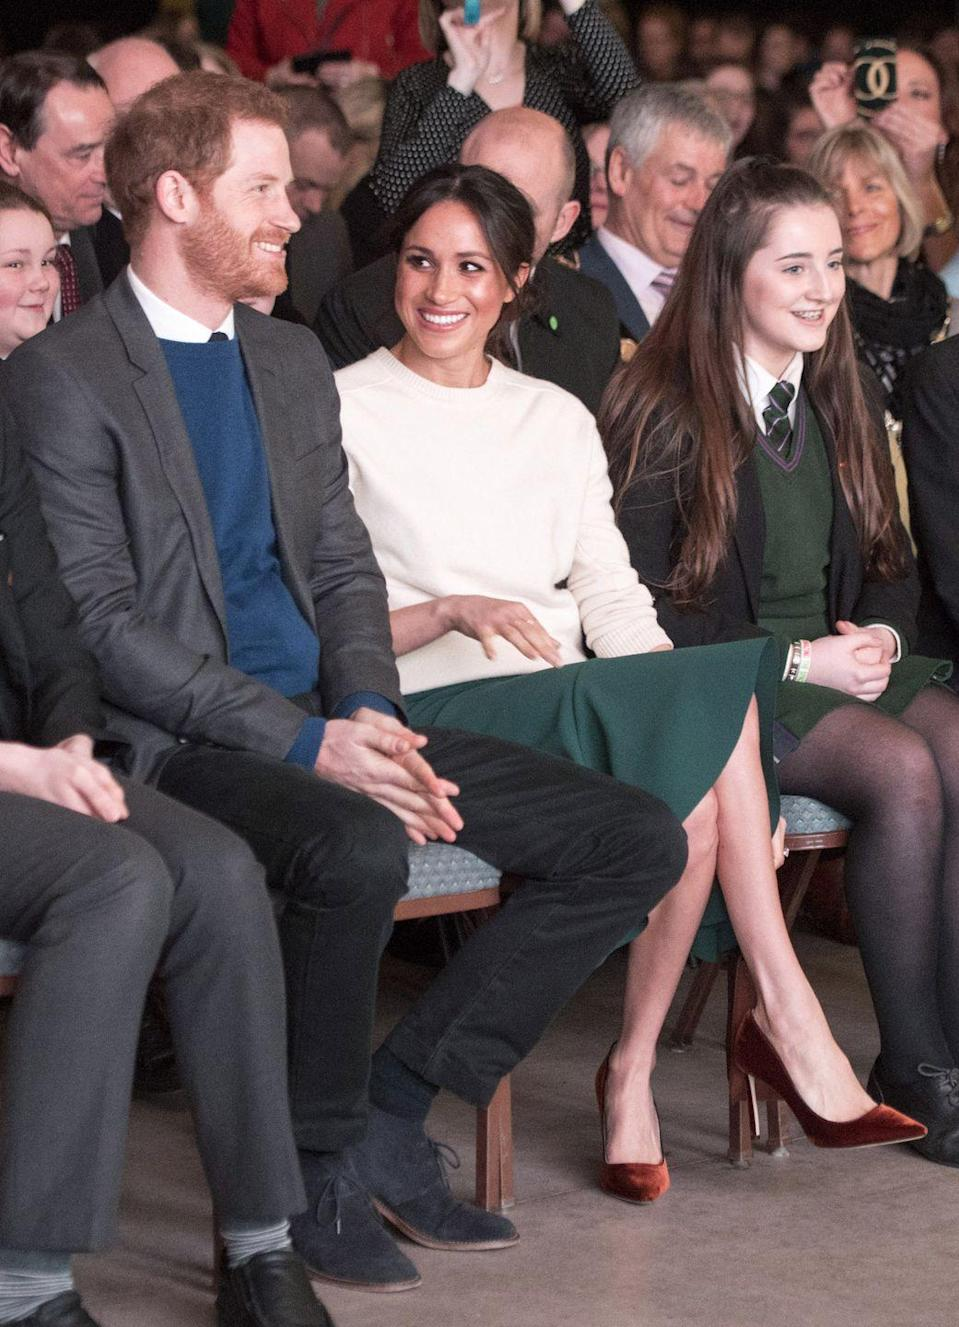 "<p><a href=""https://www.townandcountrymag.com/style/fashion-trends/a19570335/meghan-markle-outfit-belfast/"" rel=""nofollow noopener"" target=""_blank"" data-ylk=""slk:Get all the details on Meghan Markle's outfit here."" class=""link rapid-noclick-resp"">Get all the details on Meghan Markle's outfit here.</a></p>"